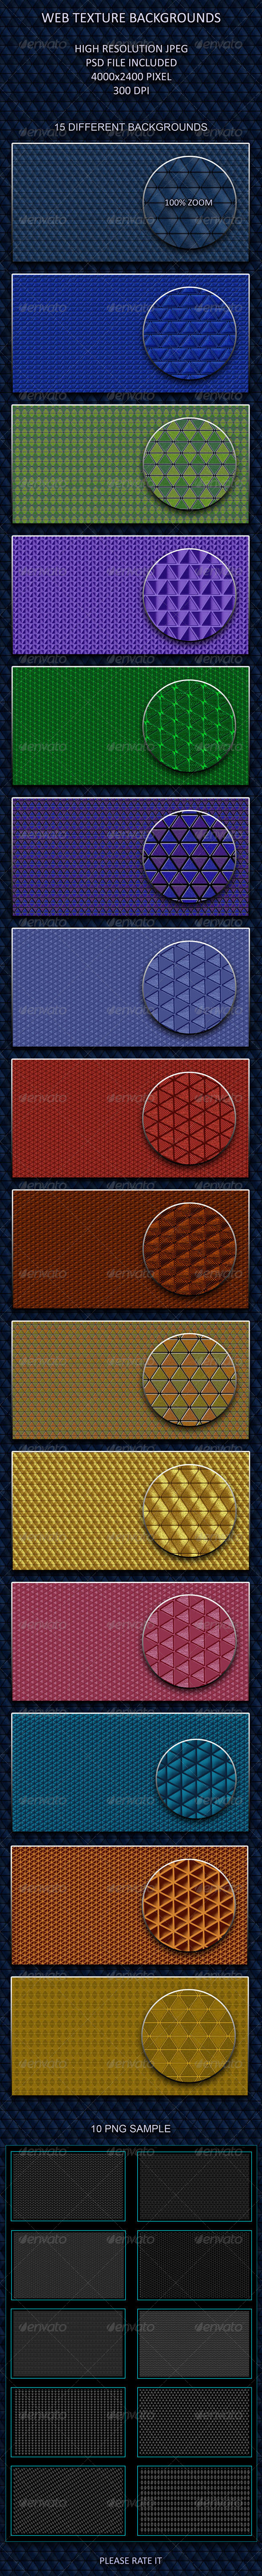 10 Web Texture Backgrounds - Patterns Backgrounds